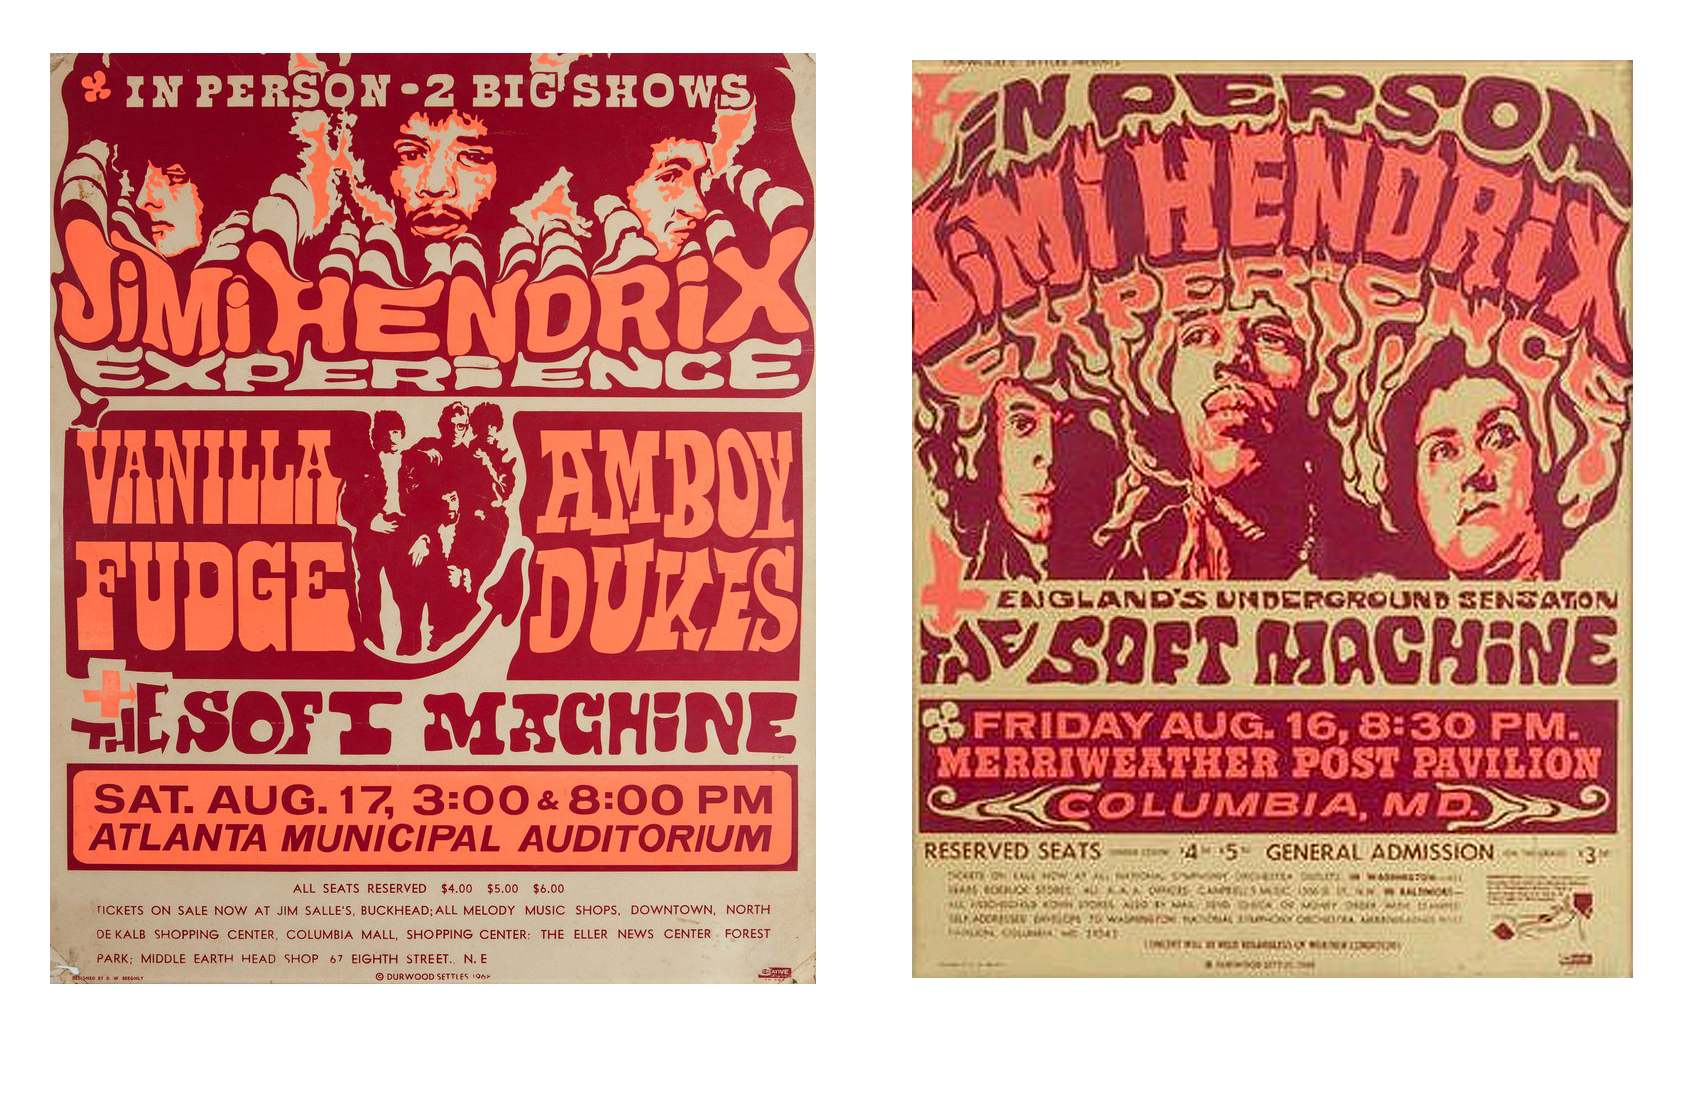 These two cardboard posters feature outstanding graphics in dayglo colors making them very appealing to collectors like Mussell.